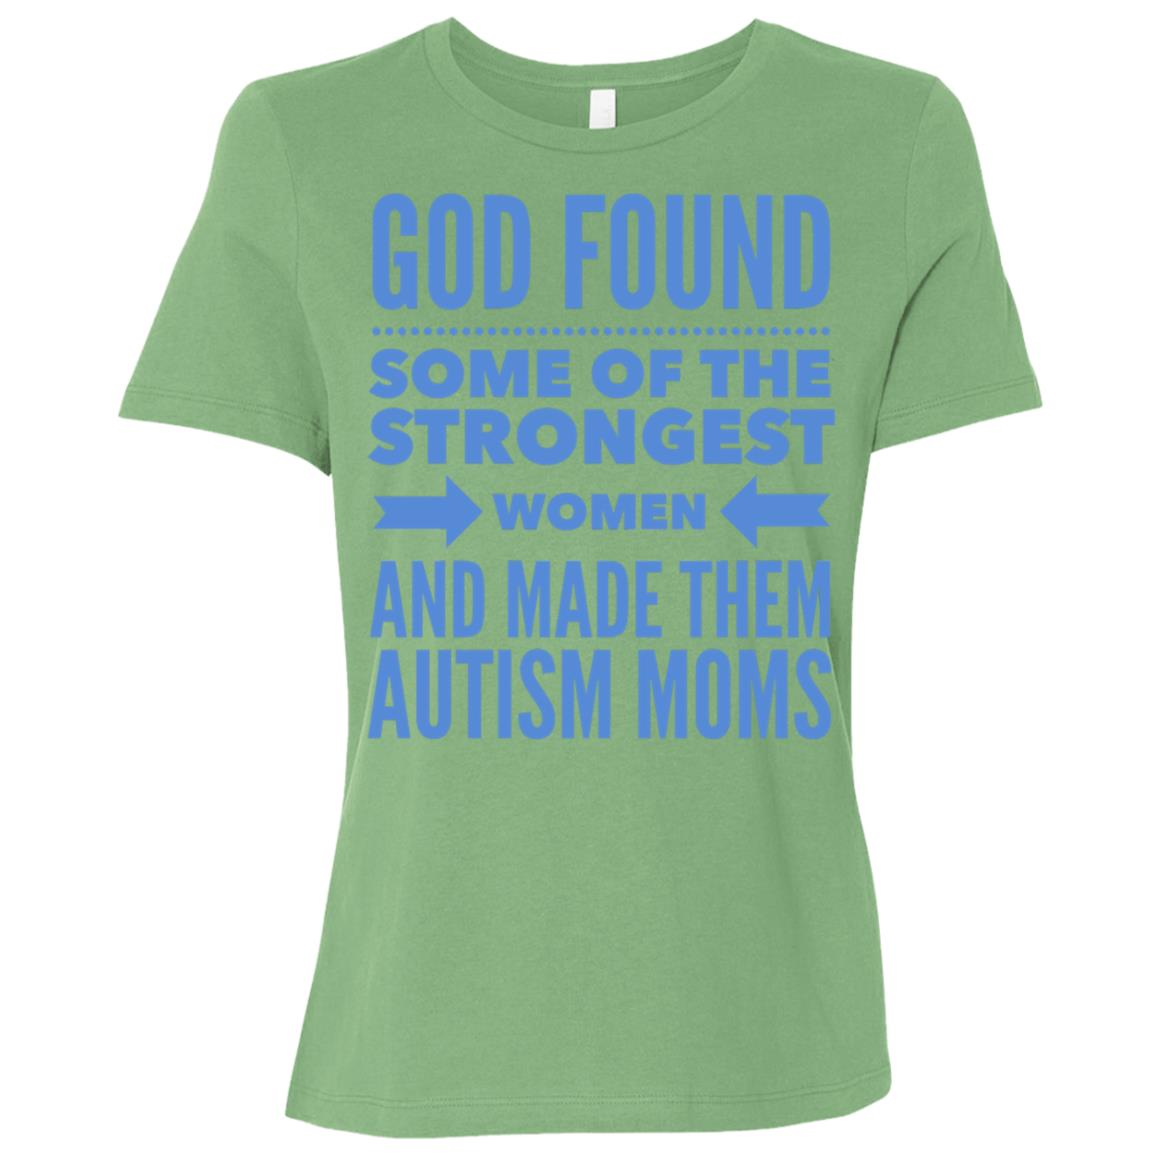 Autism Mom God Found The Strongest Women & Made Autism Moms Women Short Sleeve T-Shirt